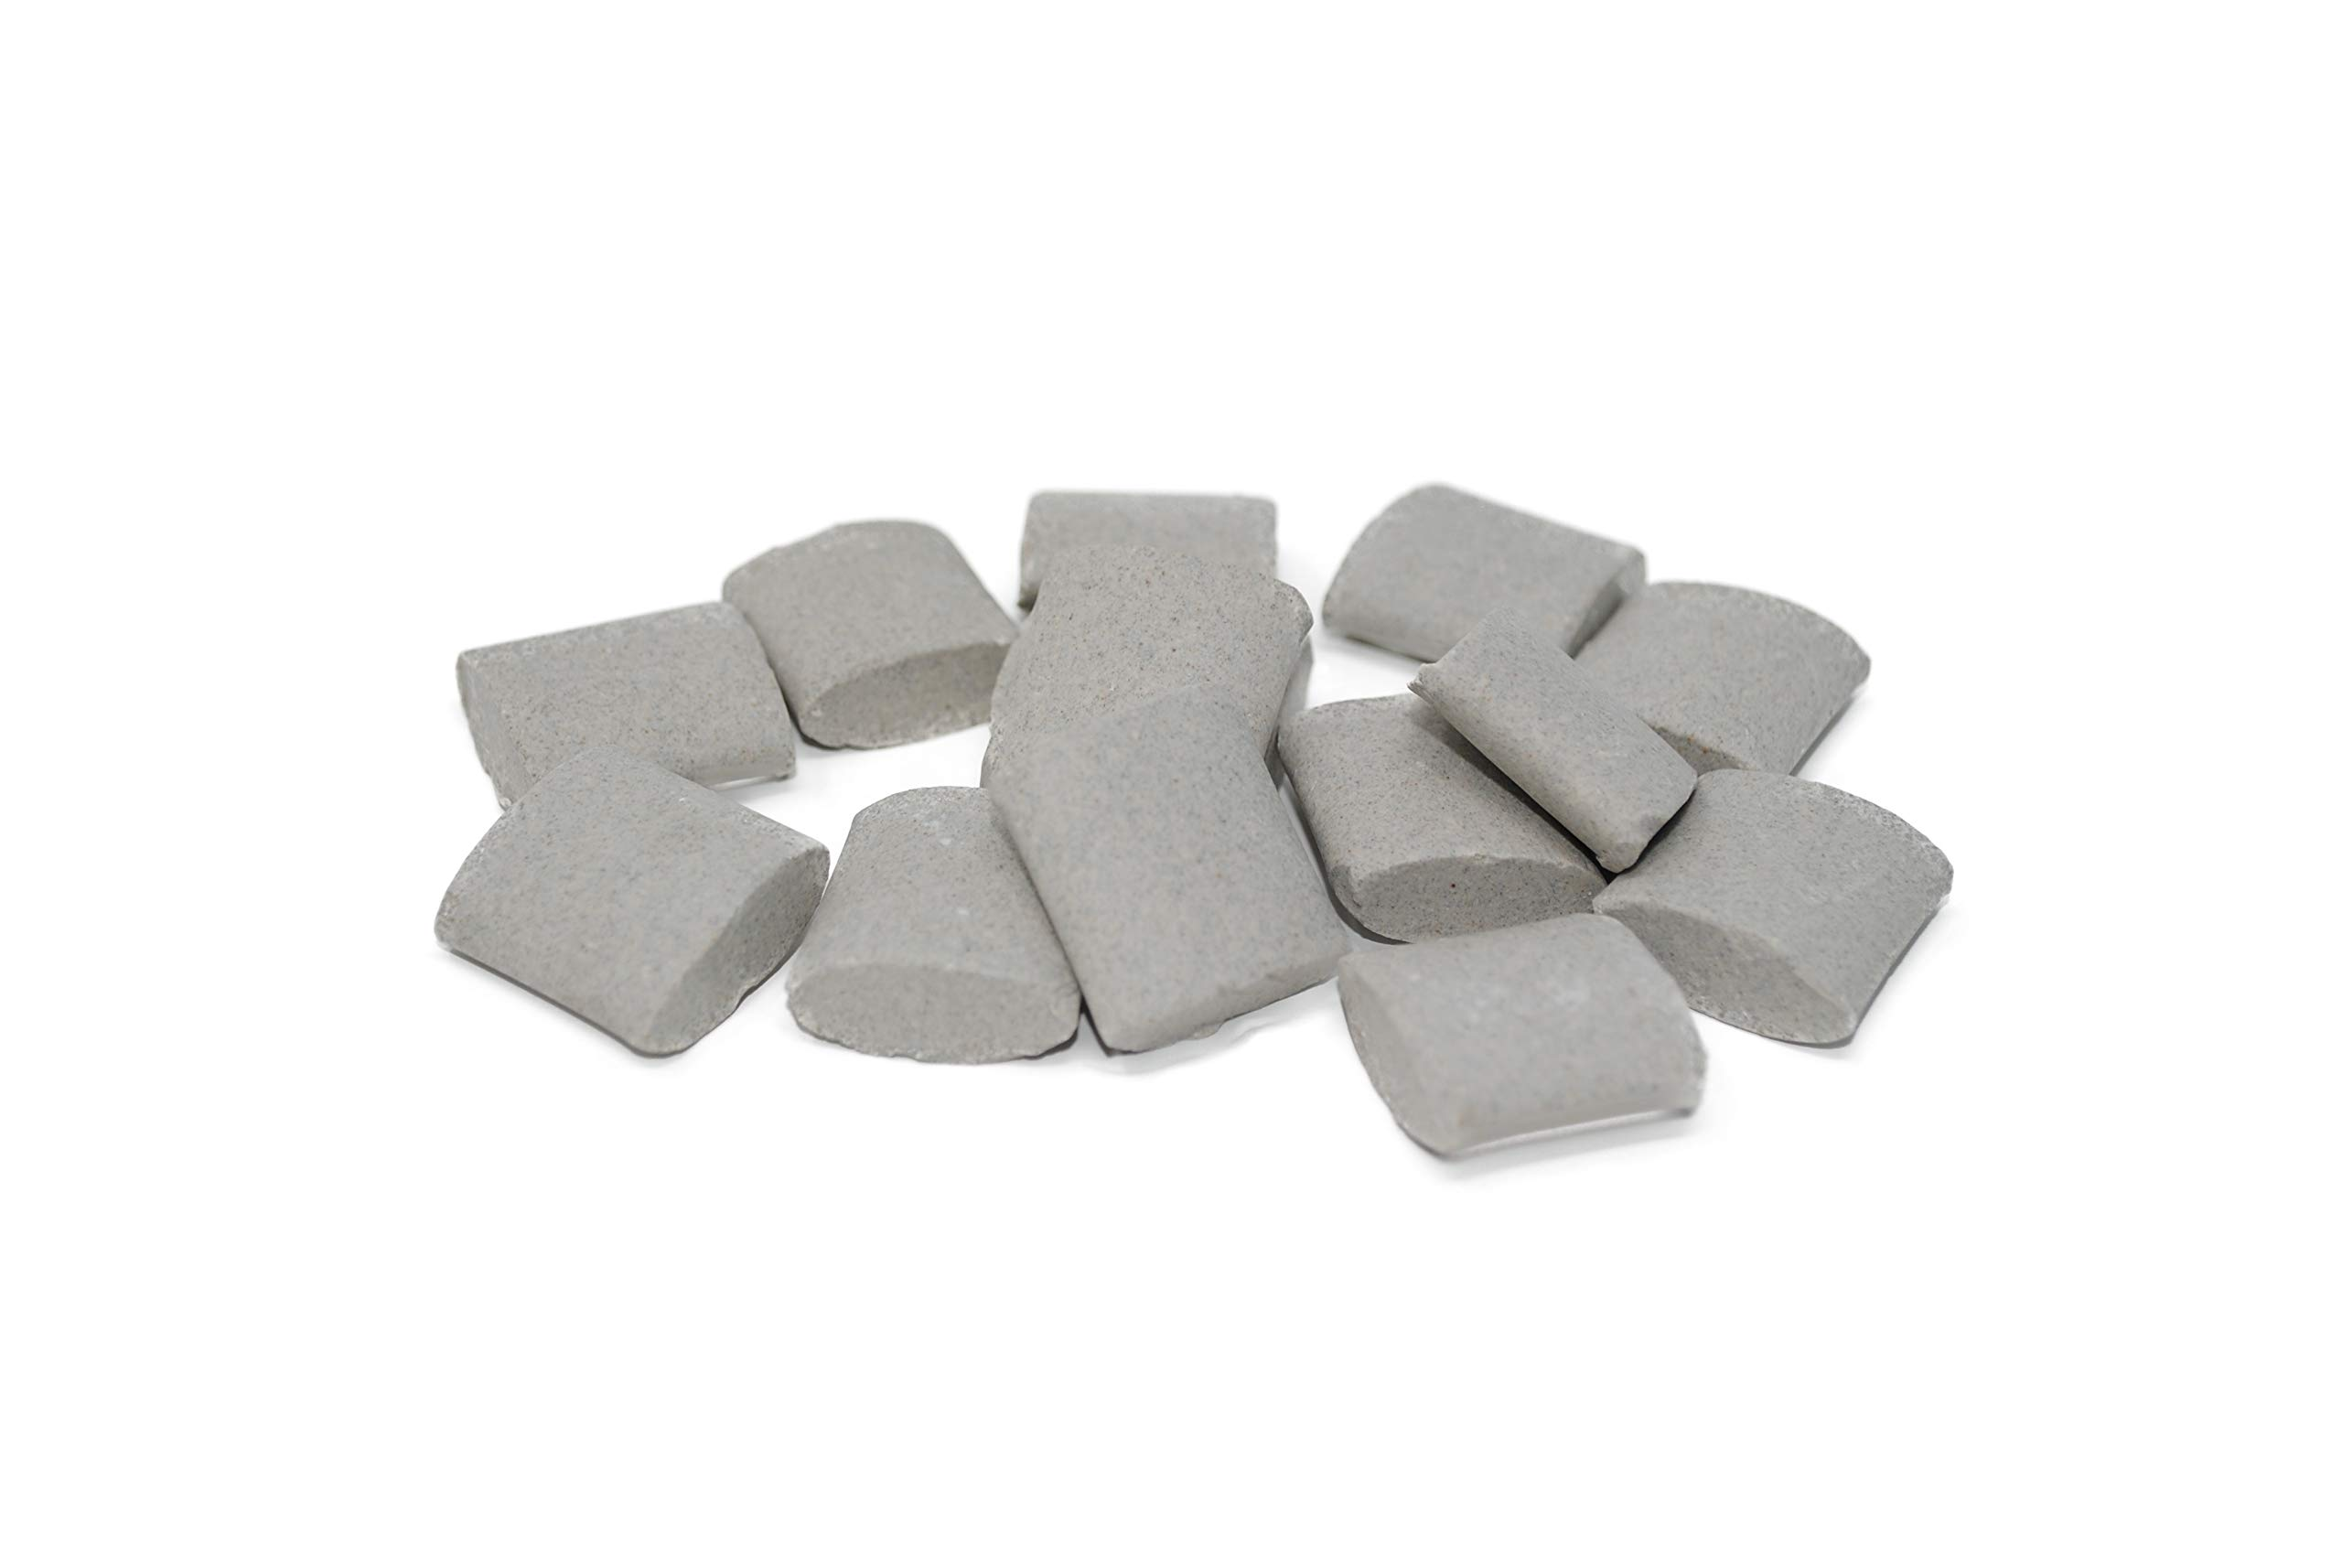 Walther Trowal BA 20X20X8, Ellipse Shape, Ceramic Tumbling Rocks, 55 lb Bag, Medium Cut